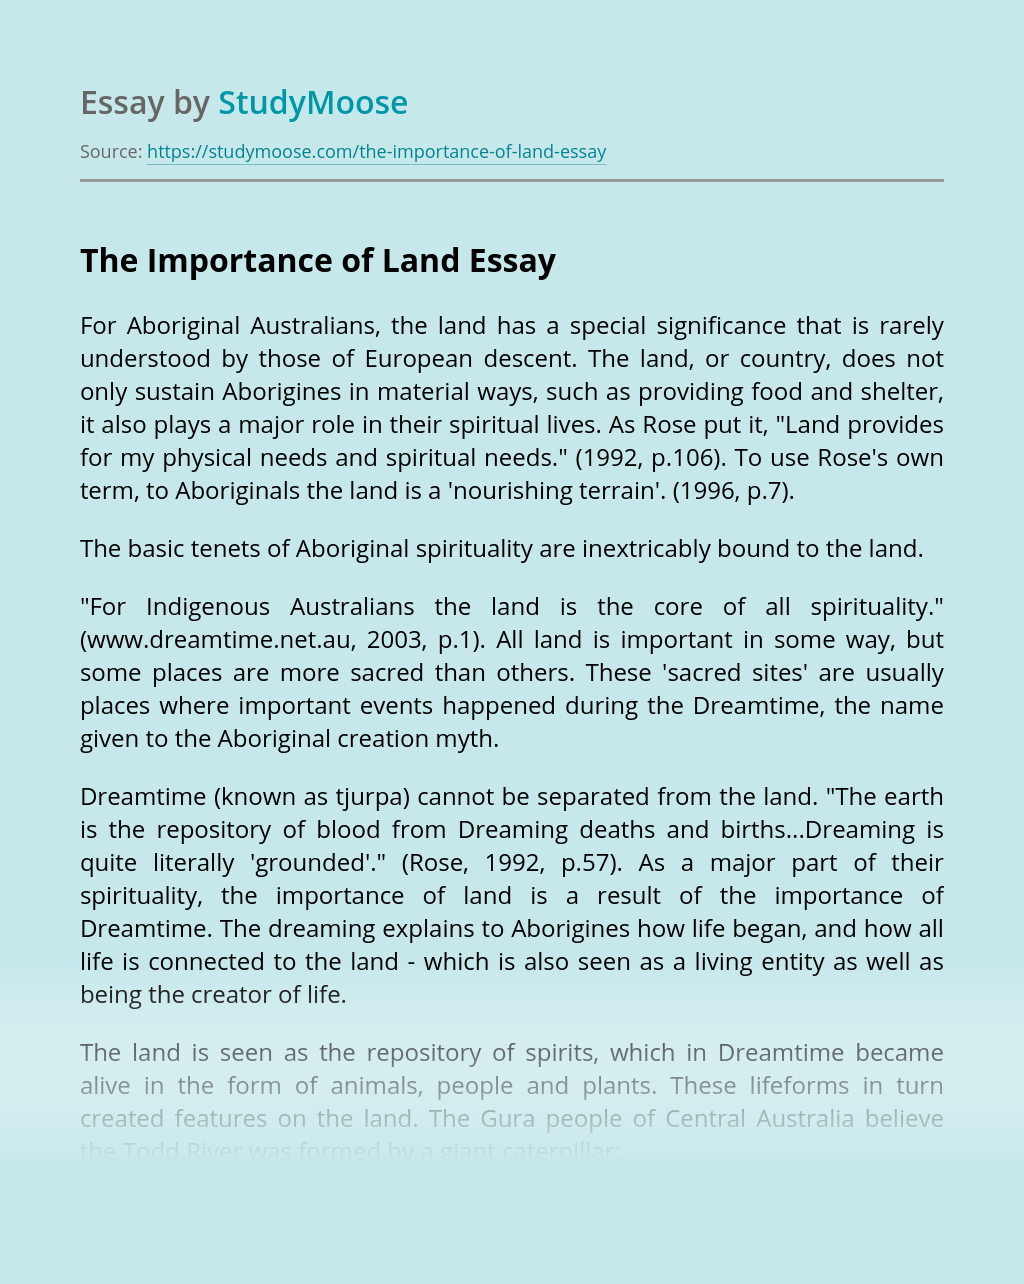 The Importance of Land